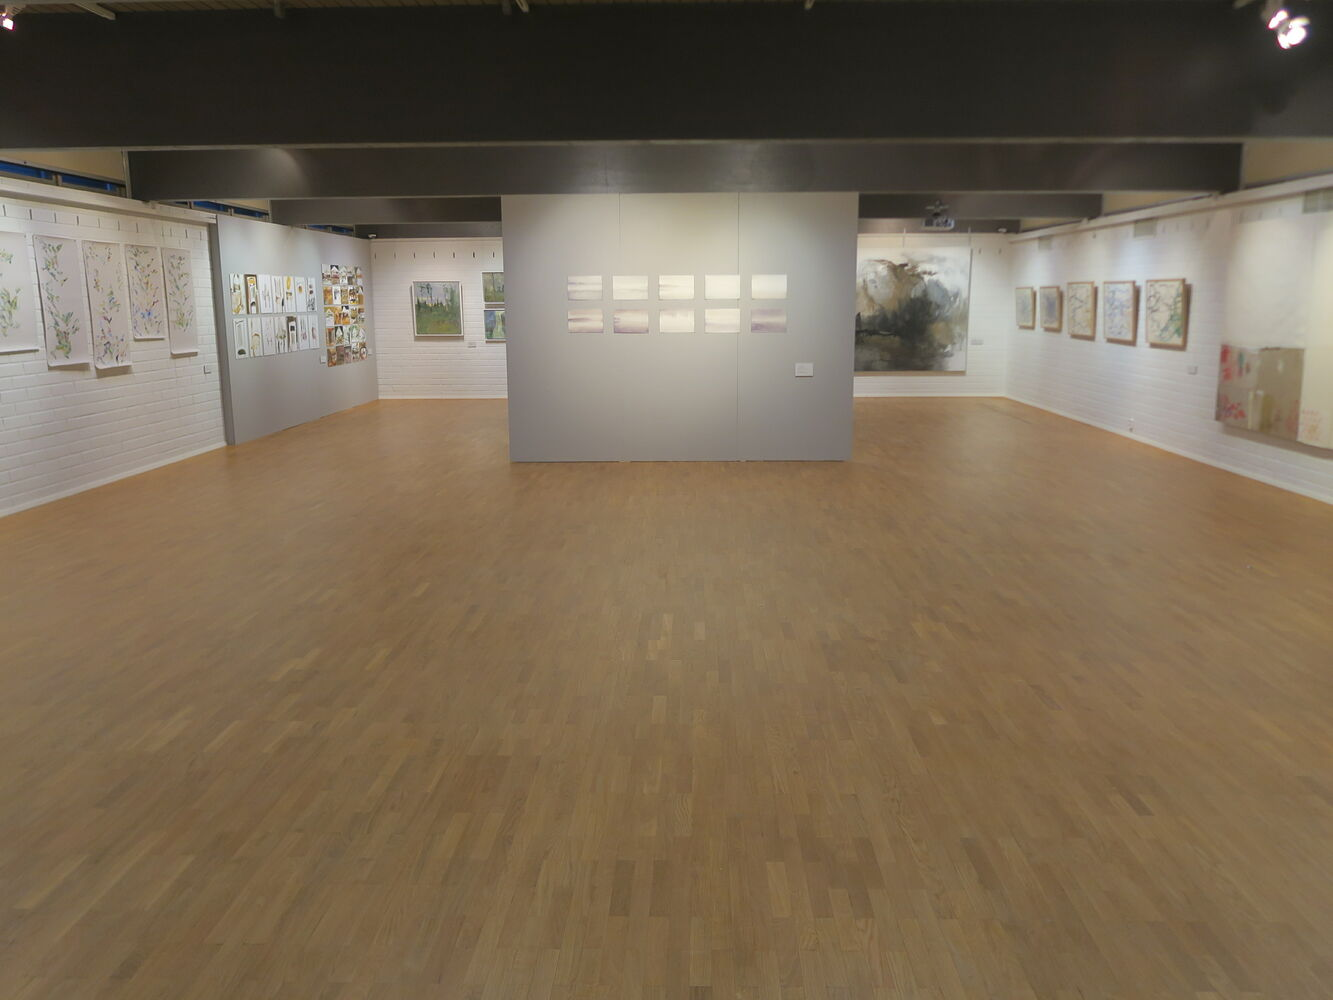 total view of the exhibition